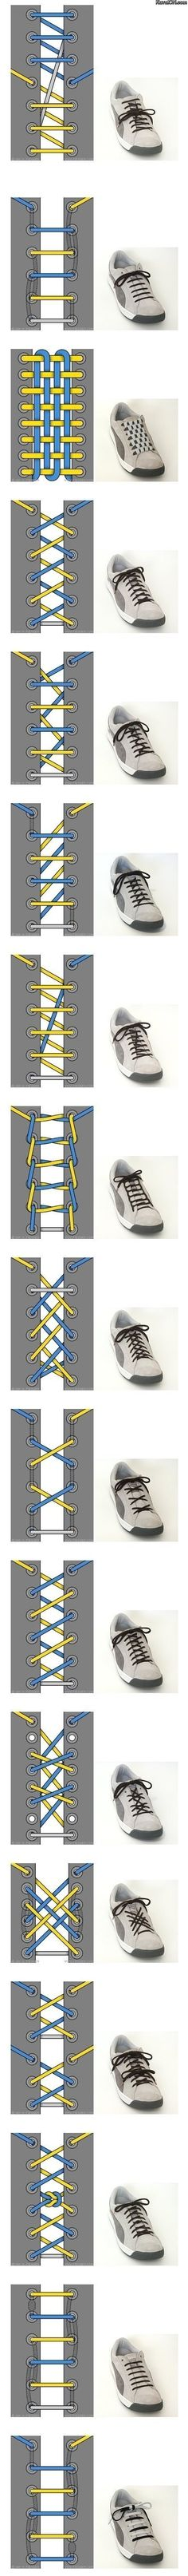 You think you know how to tie shoes? Think again.